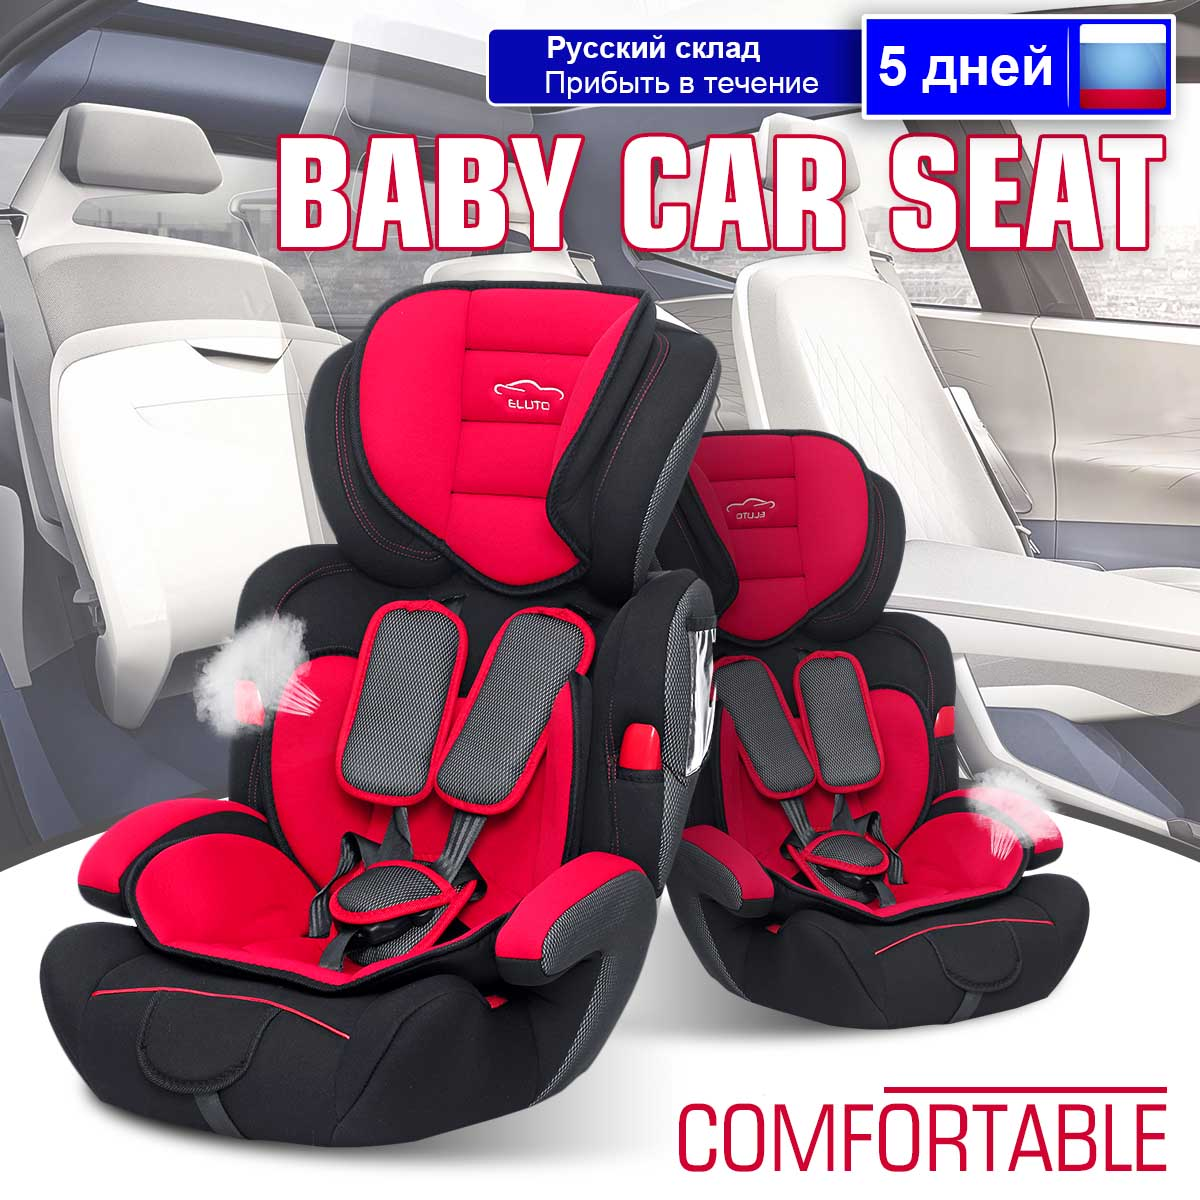 Child Car Safety Seats Baby Safety Seat for Armchair 9-36KG Group 1/2/3 Five-Point Harness Baby Booster Seats 9months to 12yearsChild Car Safety Seats Baby Safety Seat for Armchair 9-36KG Group 1/2/3 Five-Point Harness Baby Booster Seats 9months to 12years